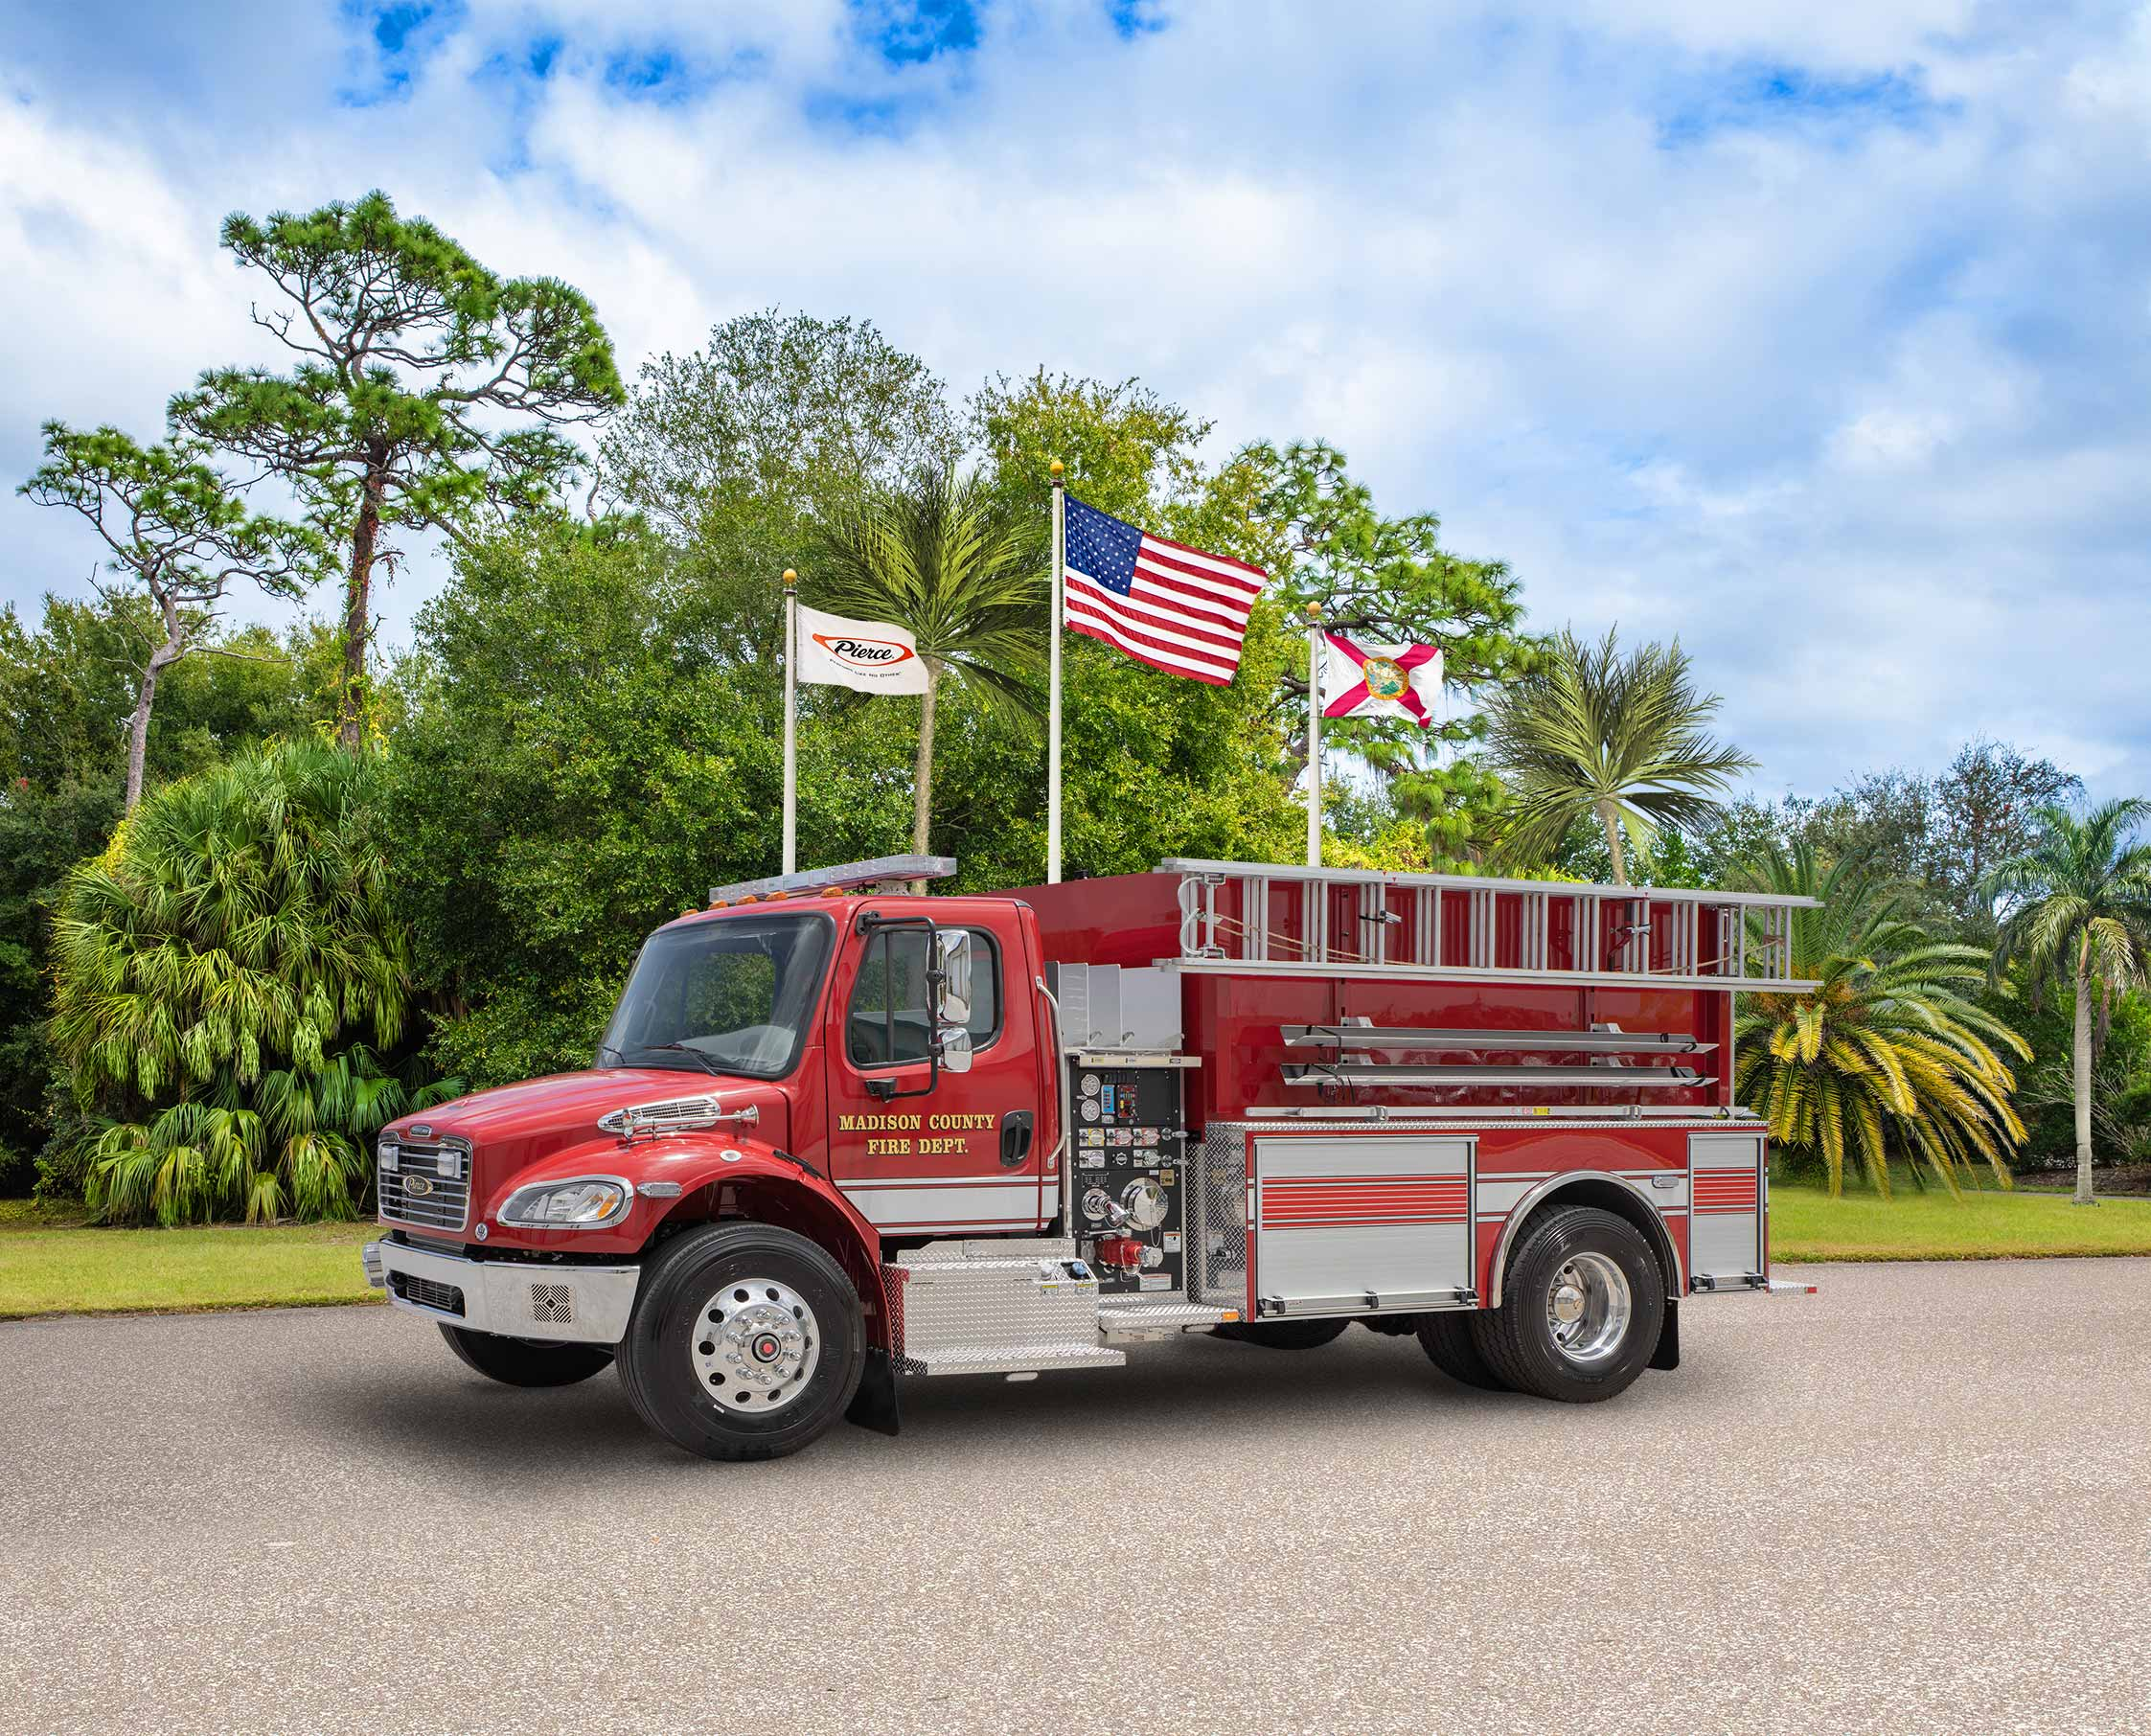 Madison County Fire Department - Tanker